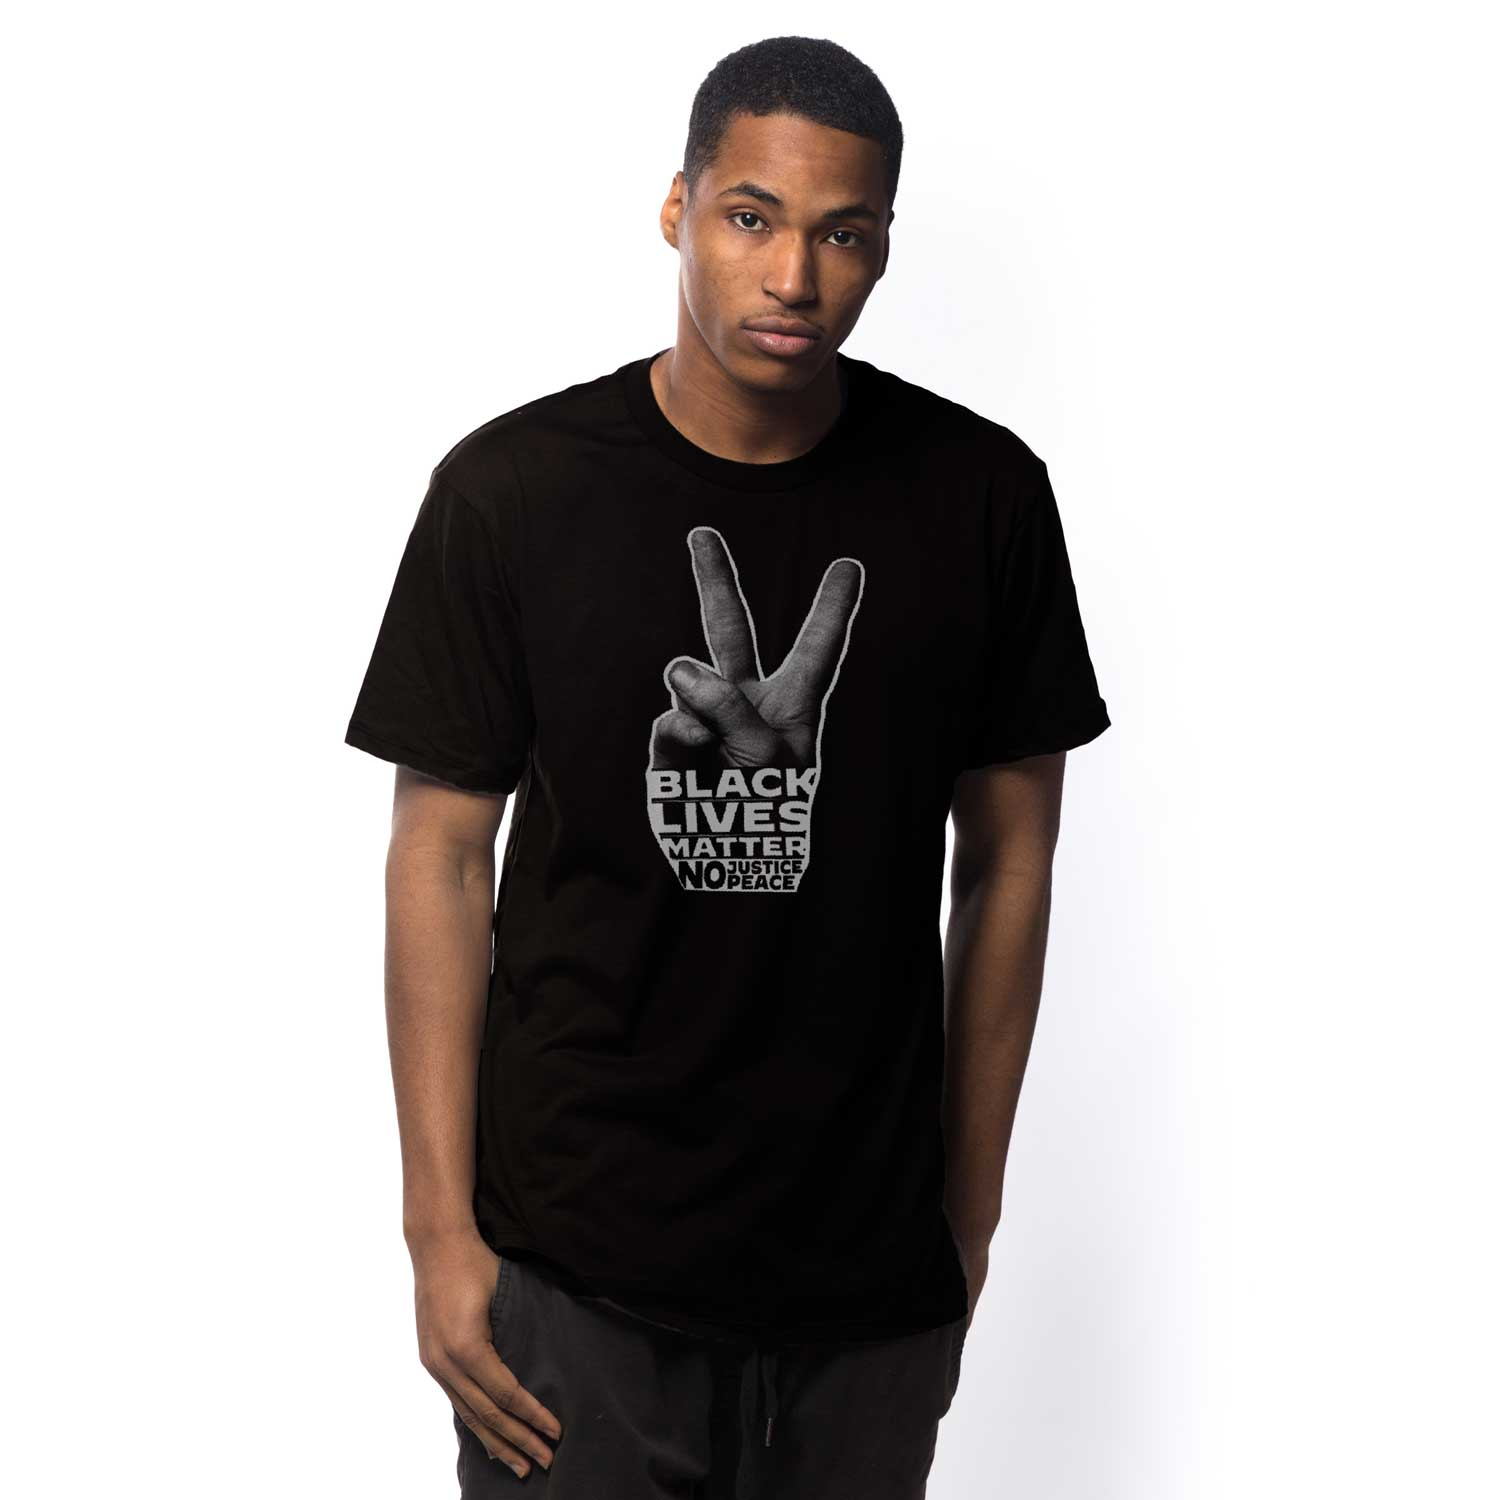 Men's Black Lives Matter Peace Hand Vintage Inspired T-shirt | Cool BLM Graphic Tee | Solid Threads